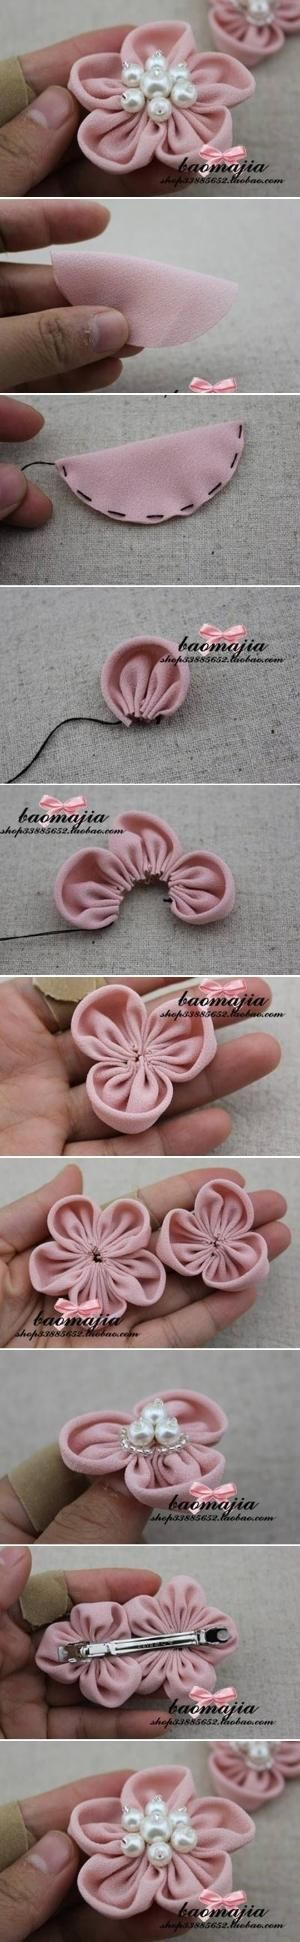 DIY Nice Fabric Flower Hair Clip by Patricia Farlee